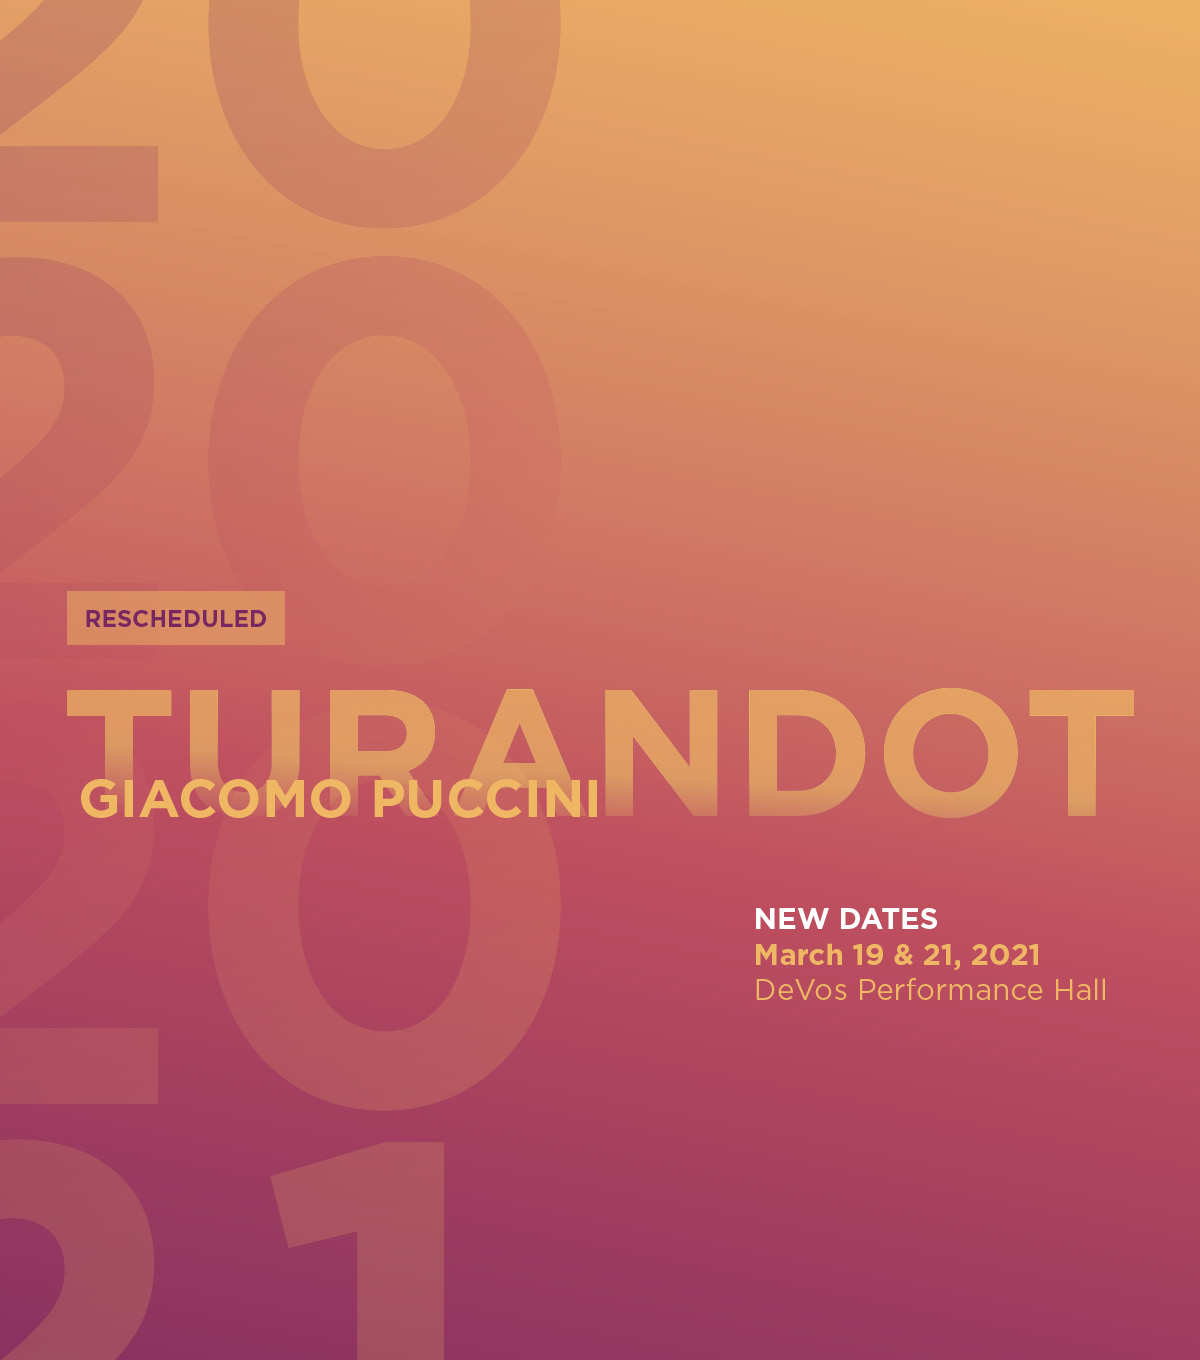 Rescheduled; Turandot by Giacomo Puccini - New Dates: March 19 & 20, 2021; DeVos Performance Hall